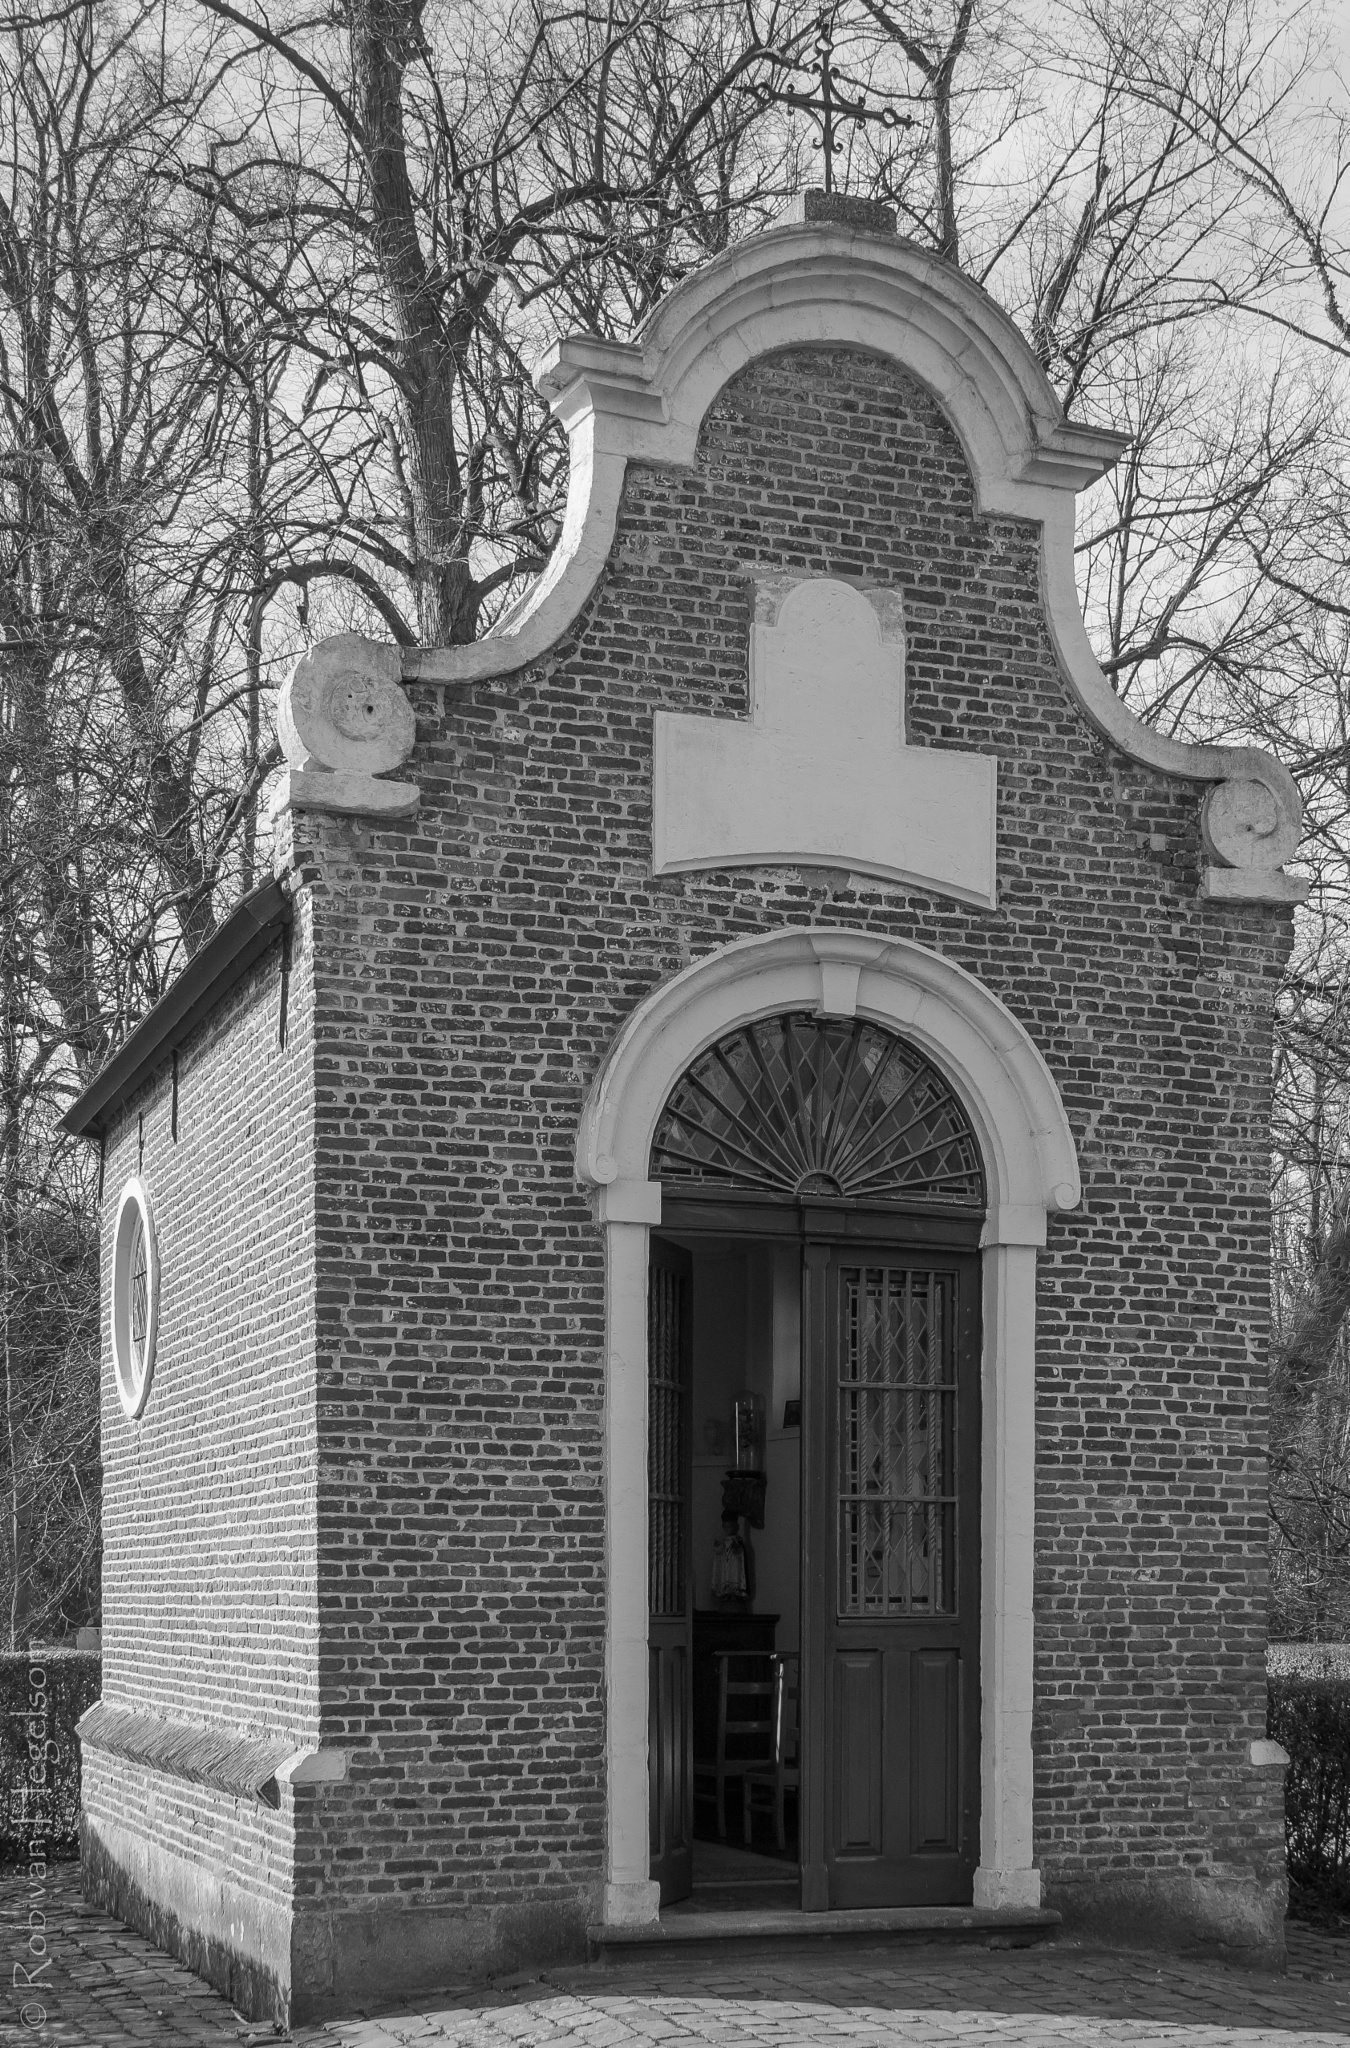 Chapel Poelendries by rvanhegelsom